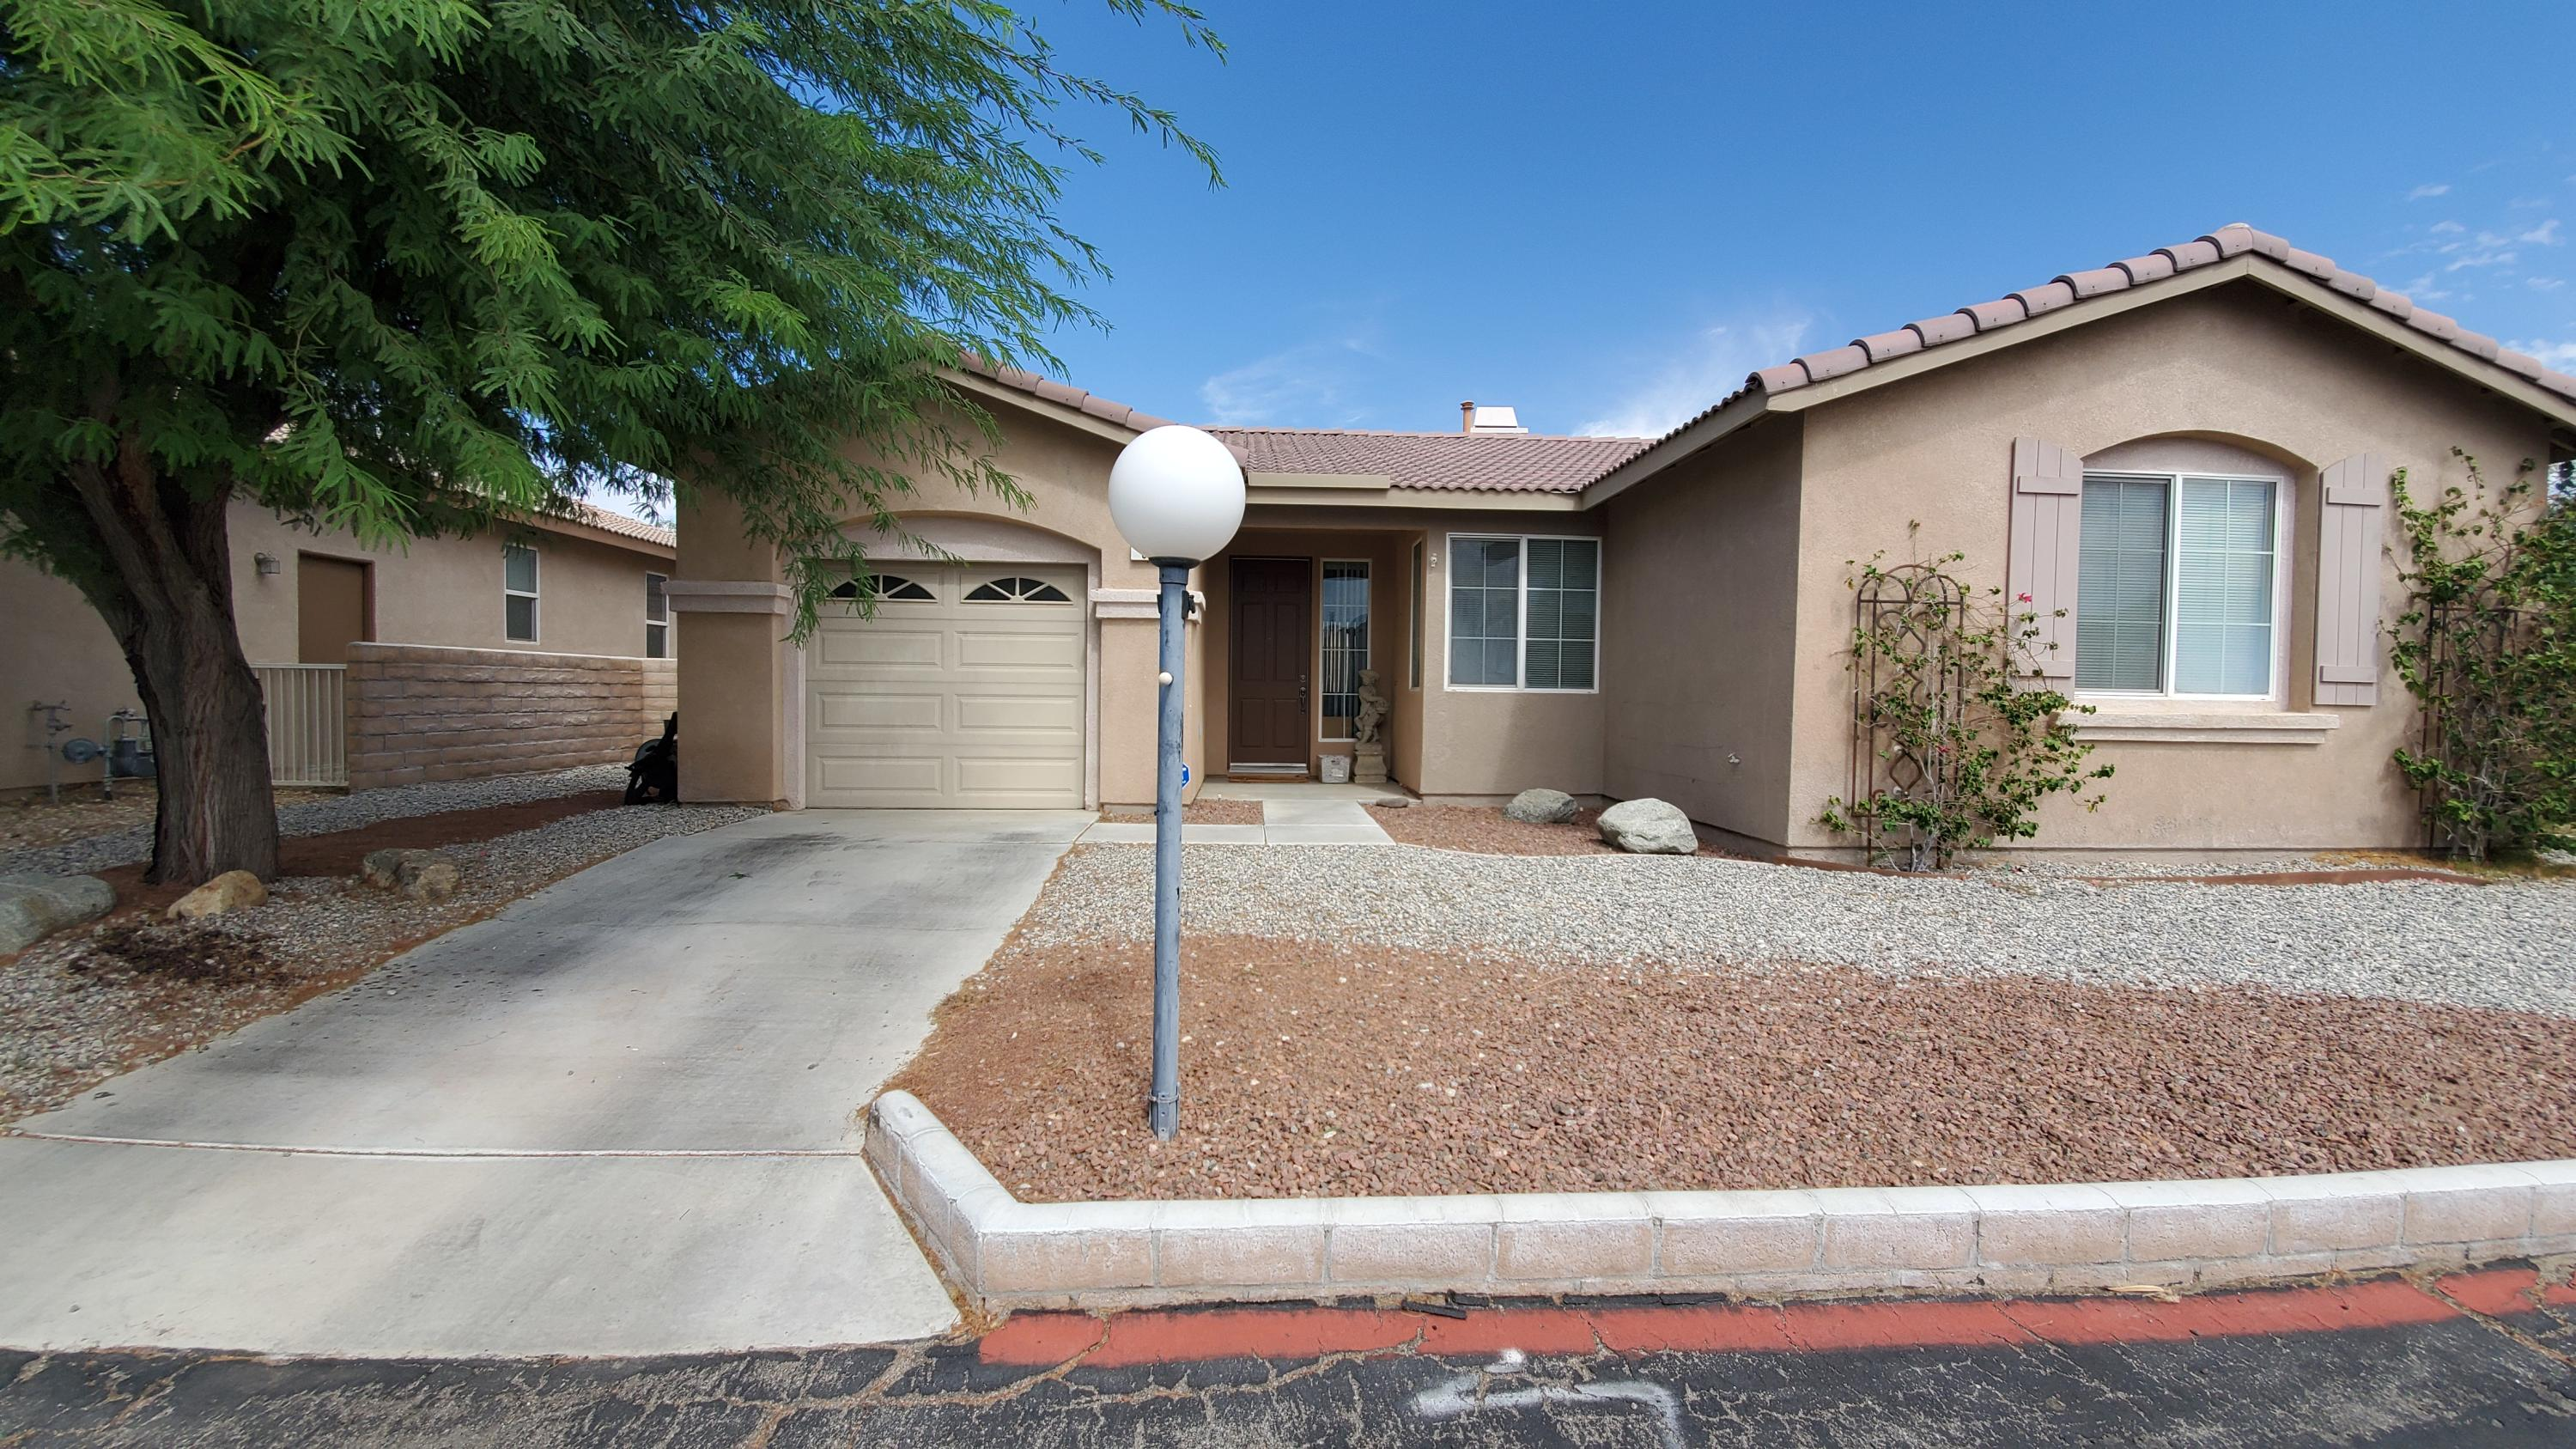 Photo of 65565 Acoma Avenue #68, Desert Hot Springs, CA 92240